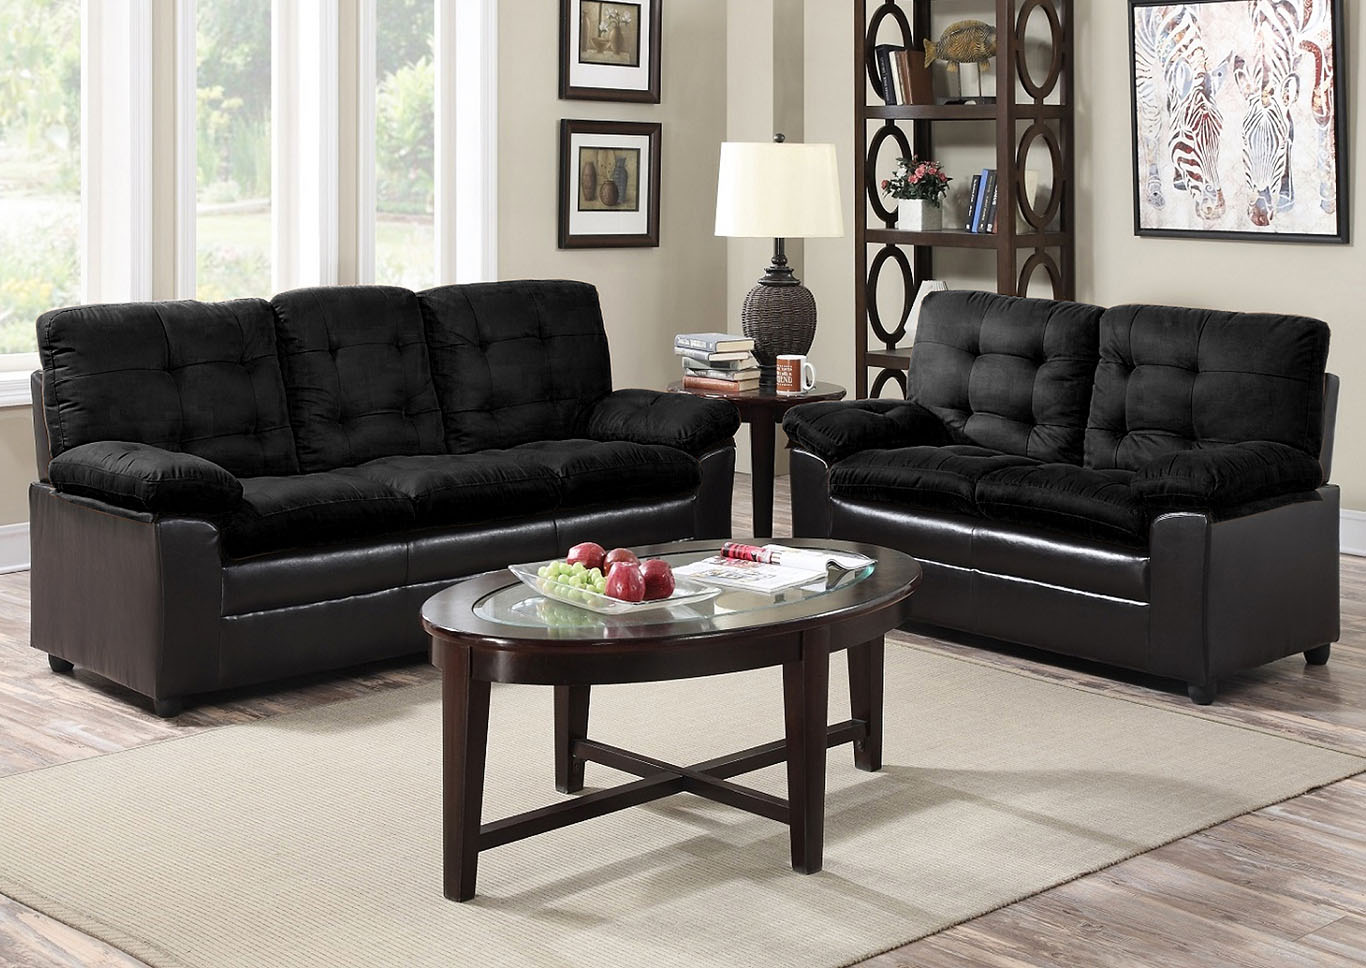 Deals More Furniture Philadelphia Pa Black Microfiber Sofa And